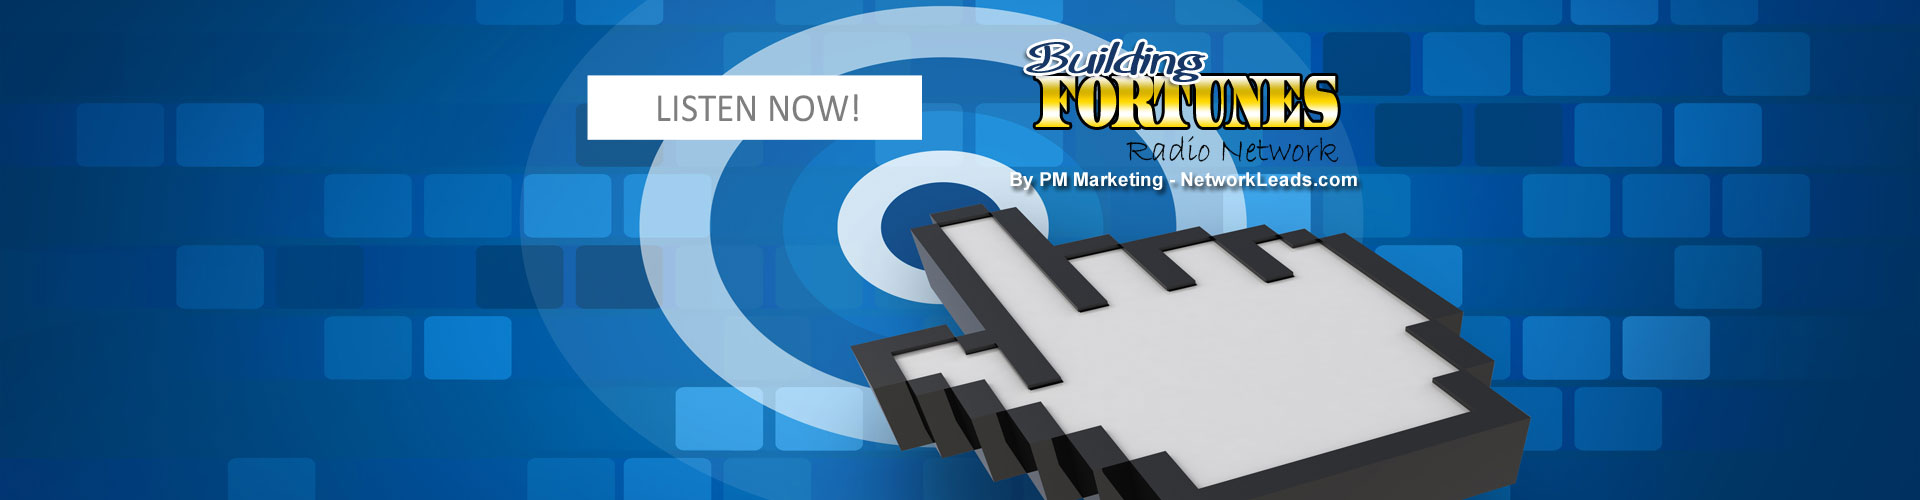 Listen To Our Archived Shows on Building Fortunes Radio Network